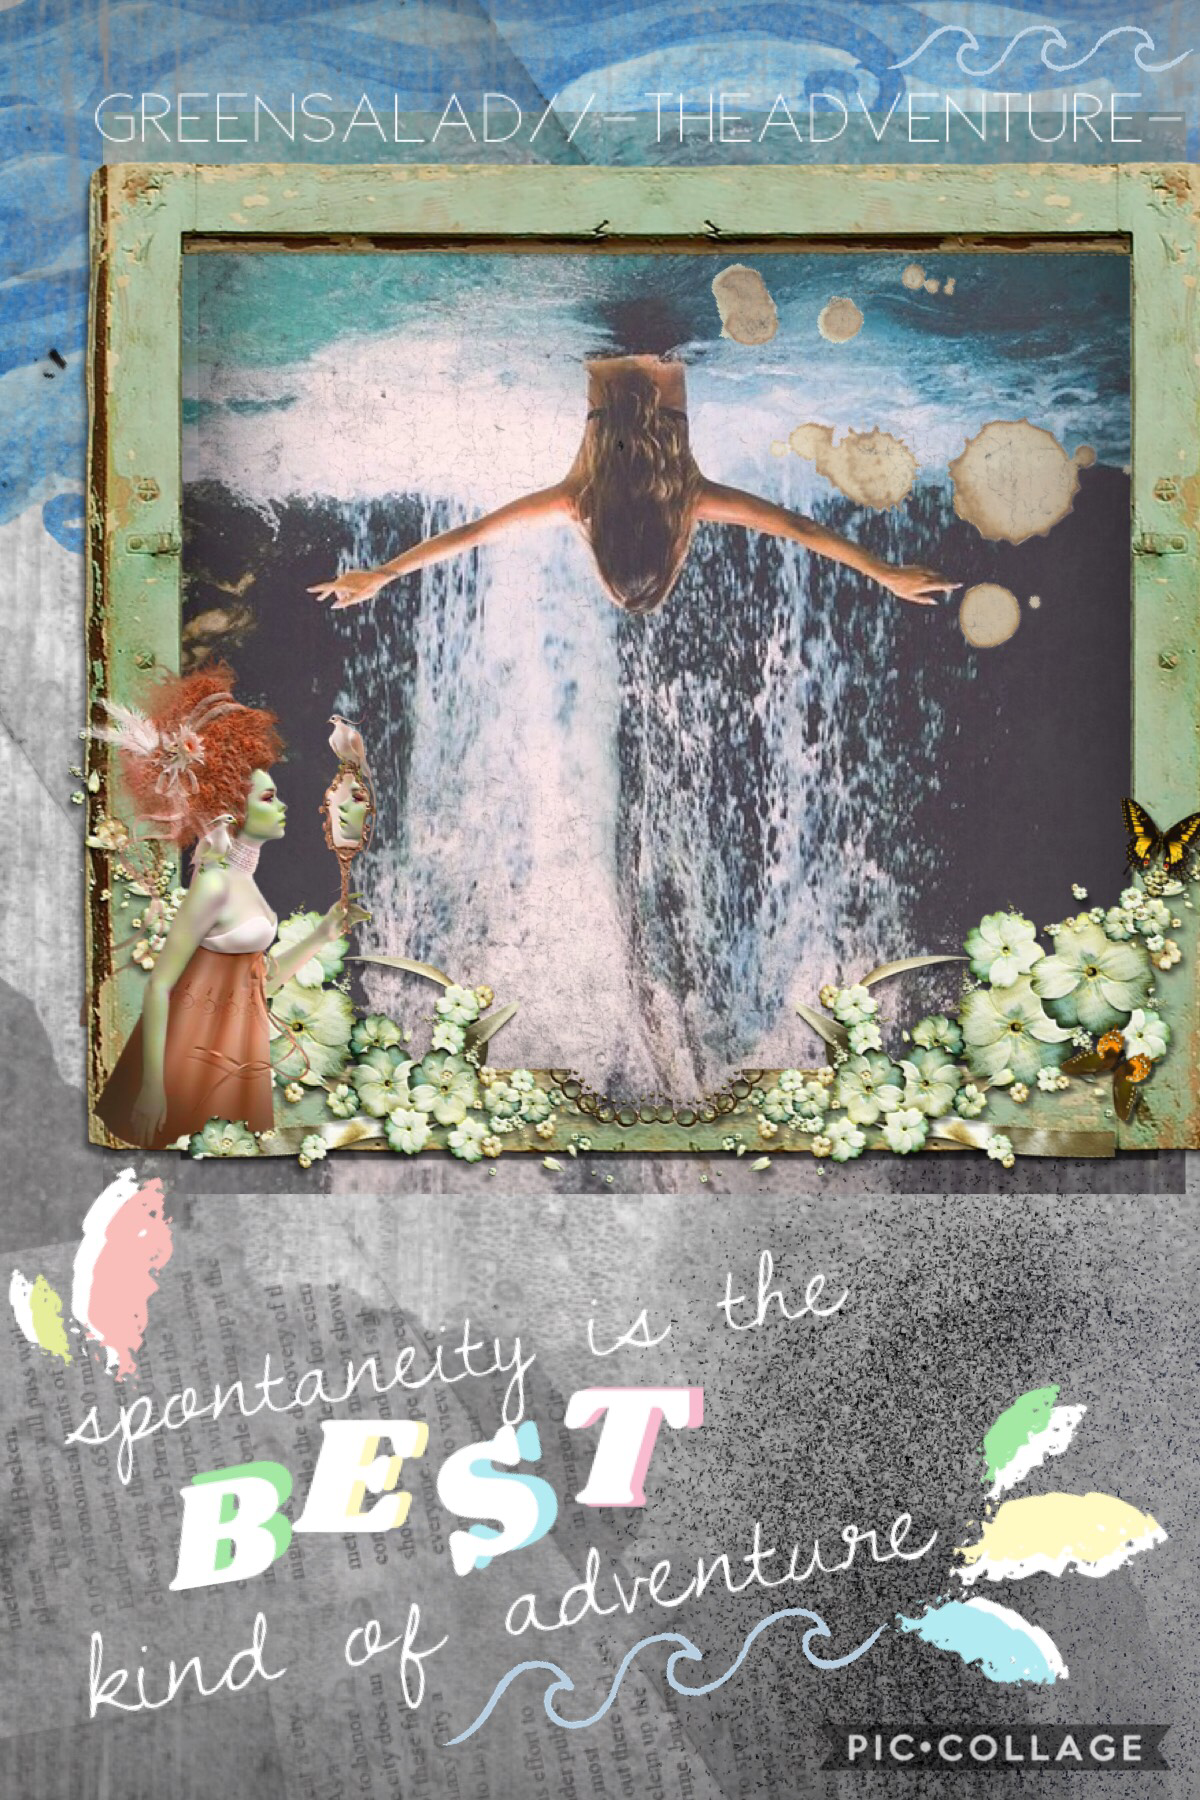 Collab with... -TheAdventure-!!!! She's very kind and her collages are very unique. Her style is quite interesting. You should go follow her.